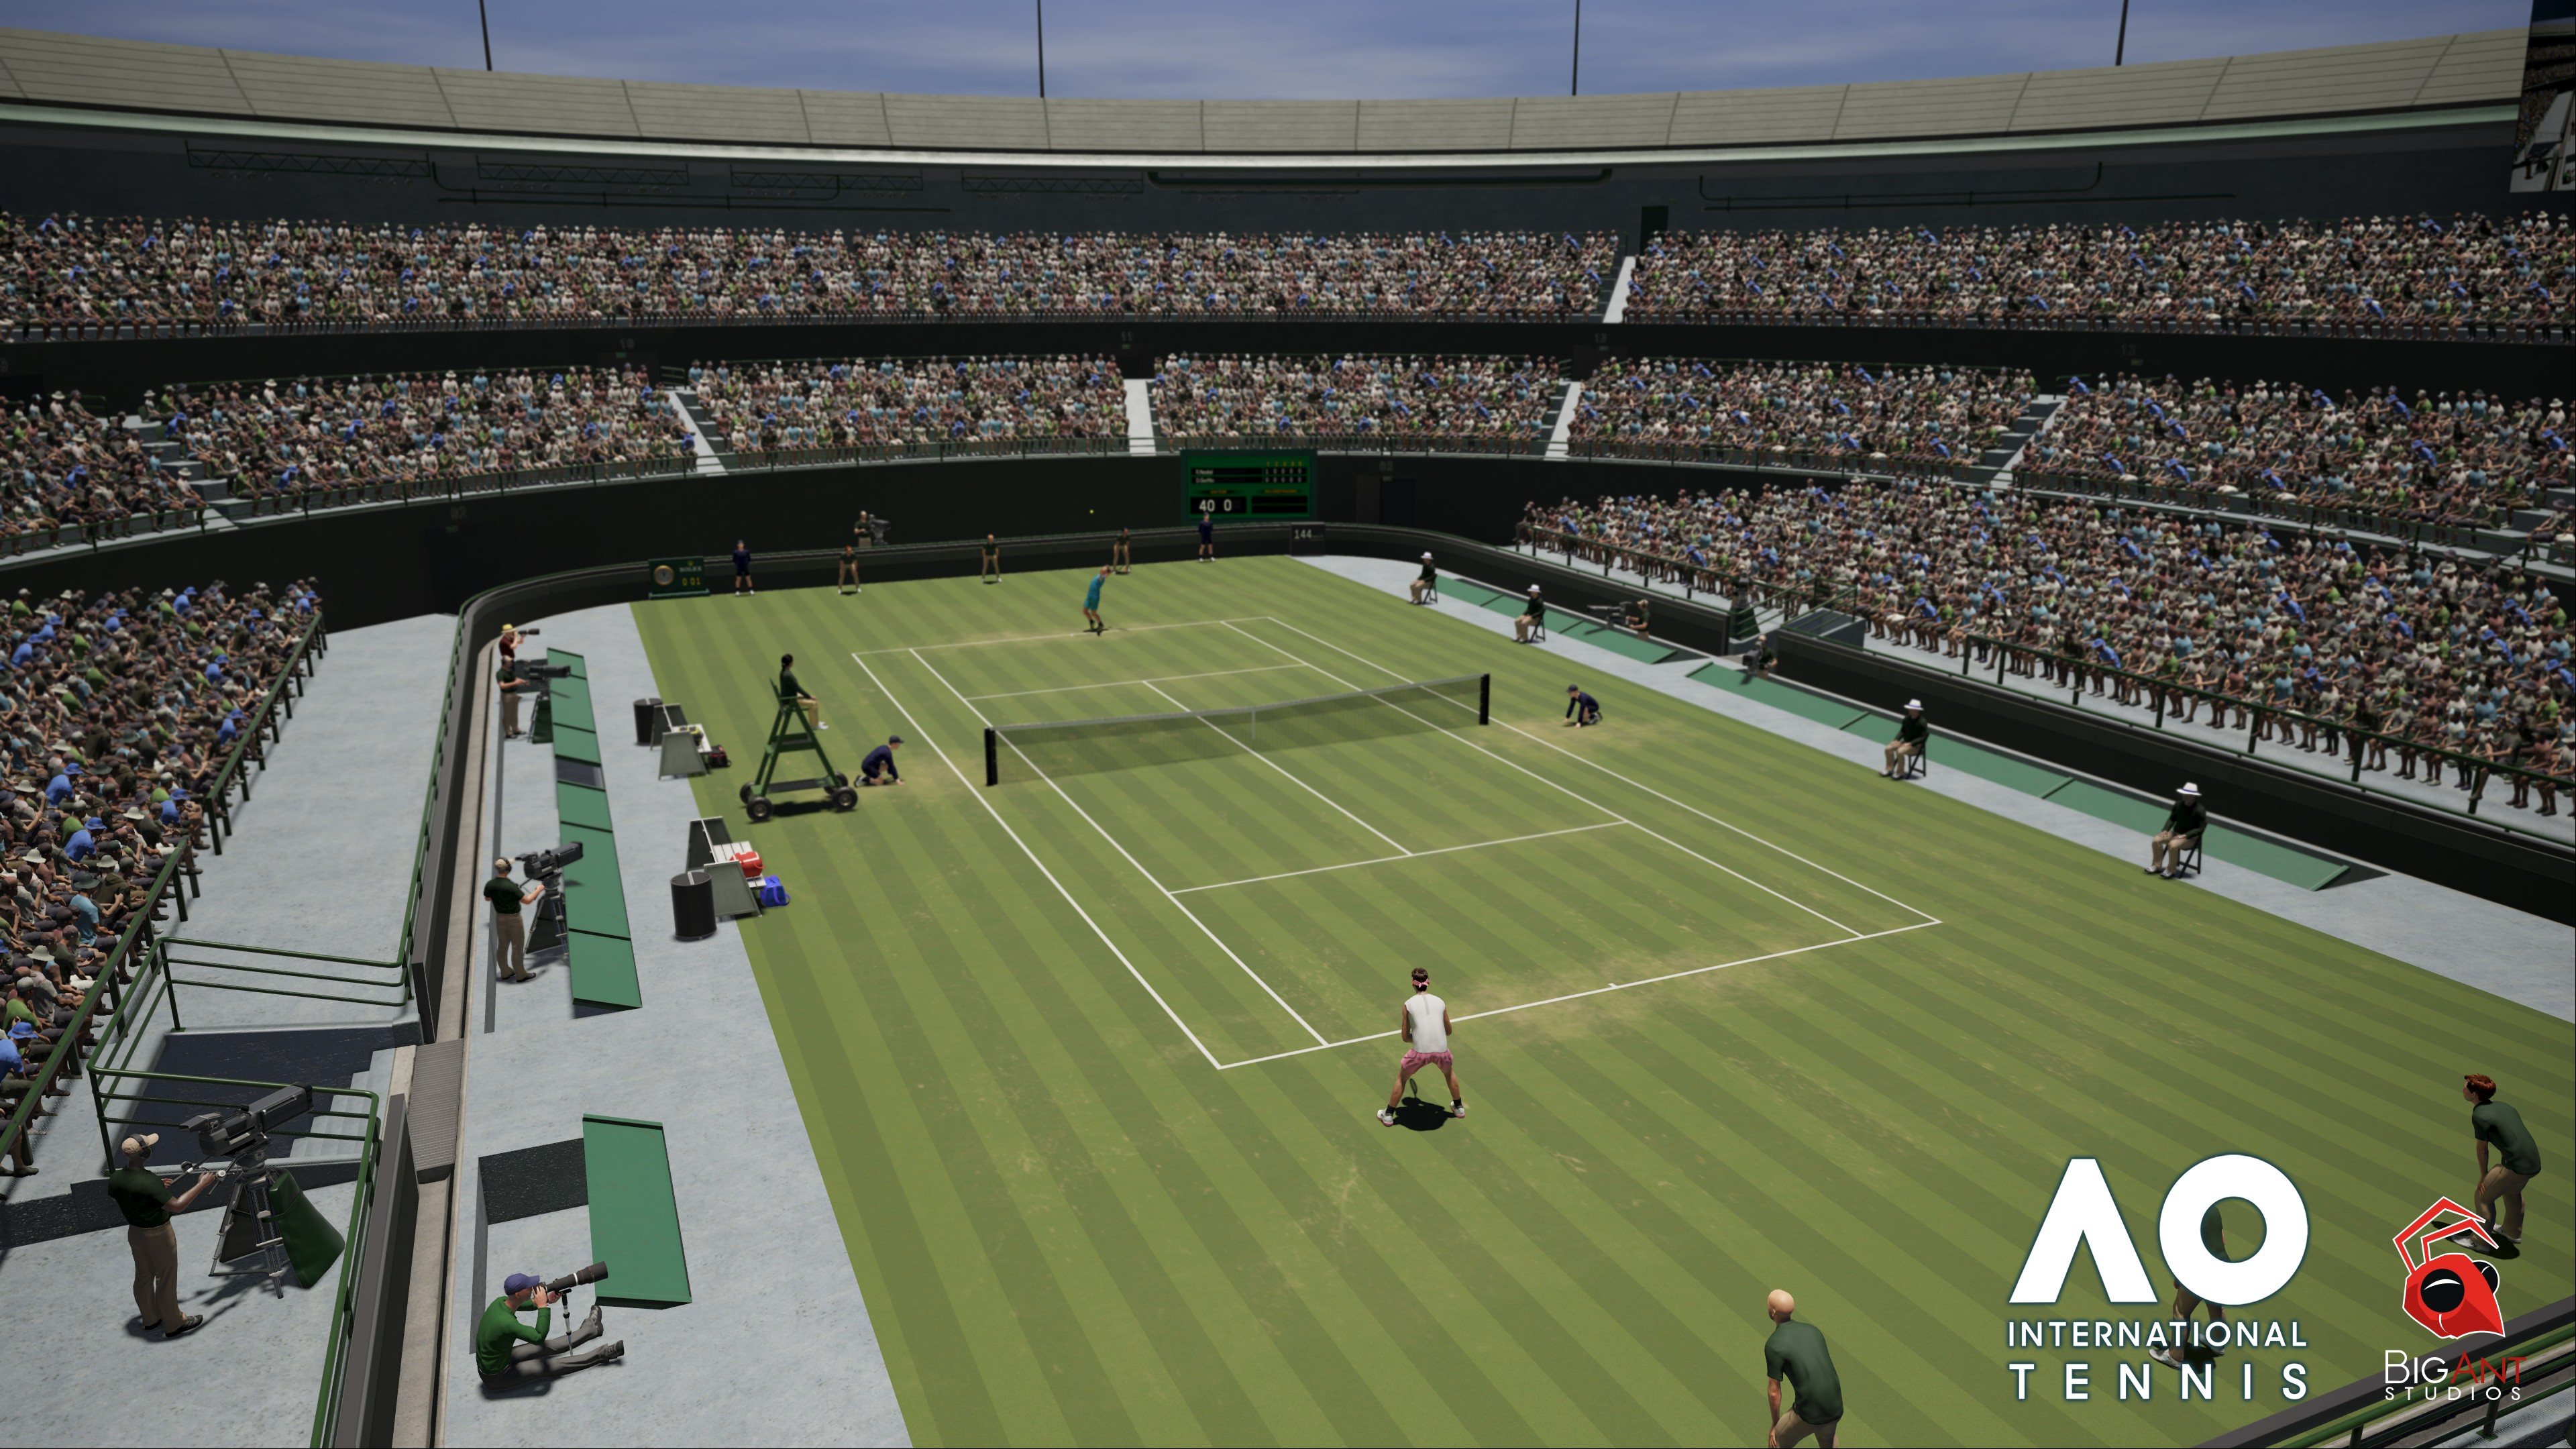 AO International Tennis Screenshot 1